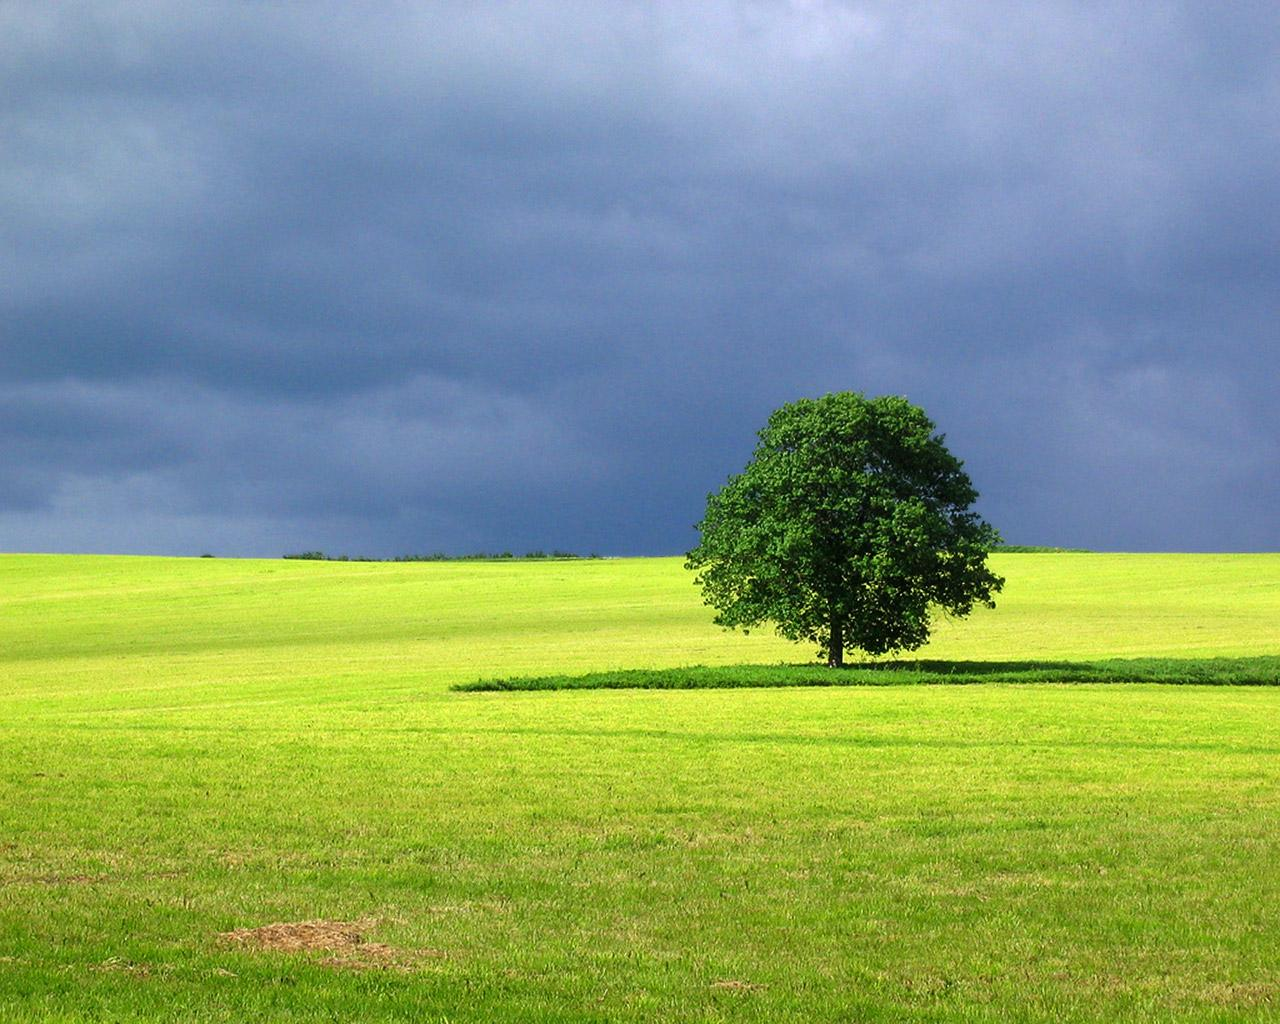 1280x1024 Landscape Tree desktop PC and Mac wallpaper 1280x1024